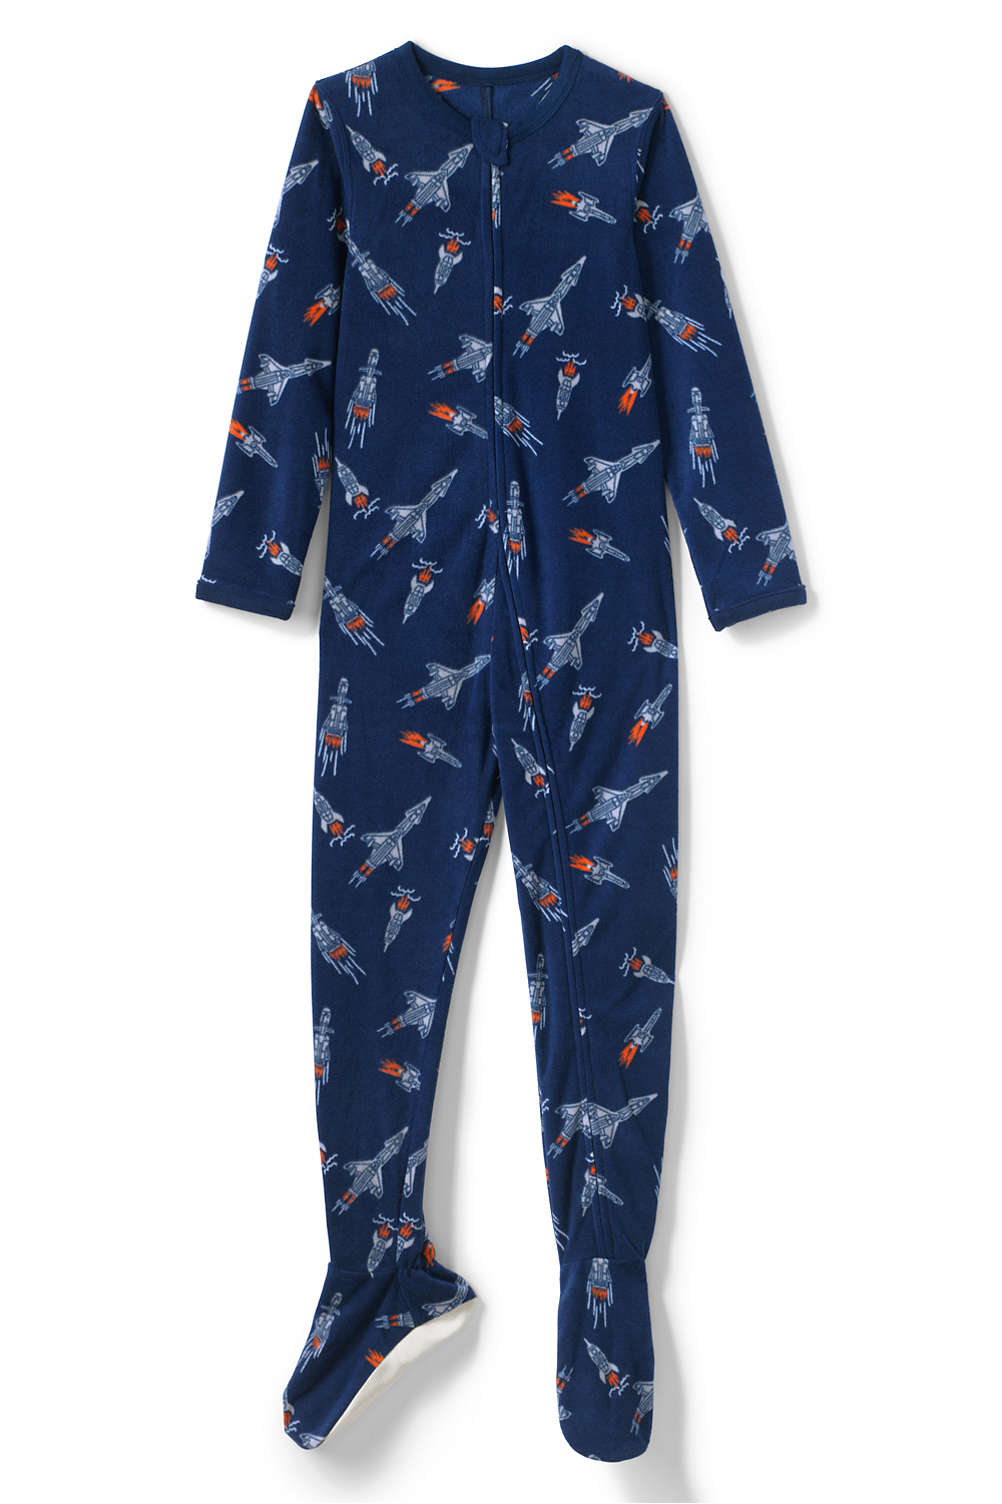 5c568a06d2 Boys Full Zip Fleece Footed Sleeper from Lands  End